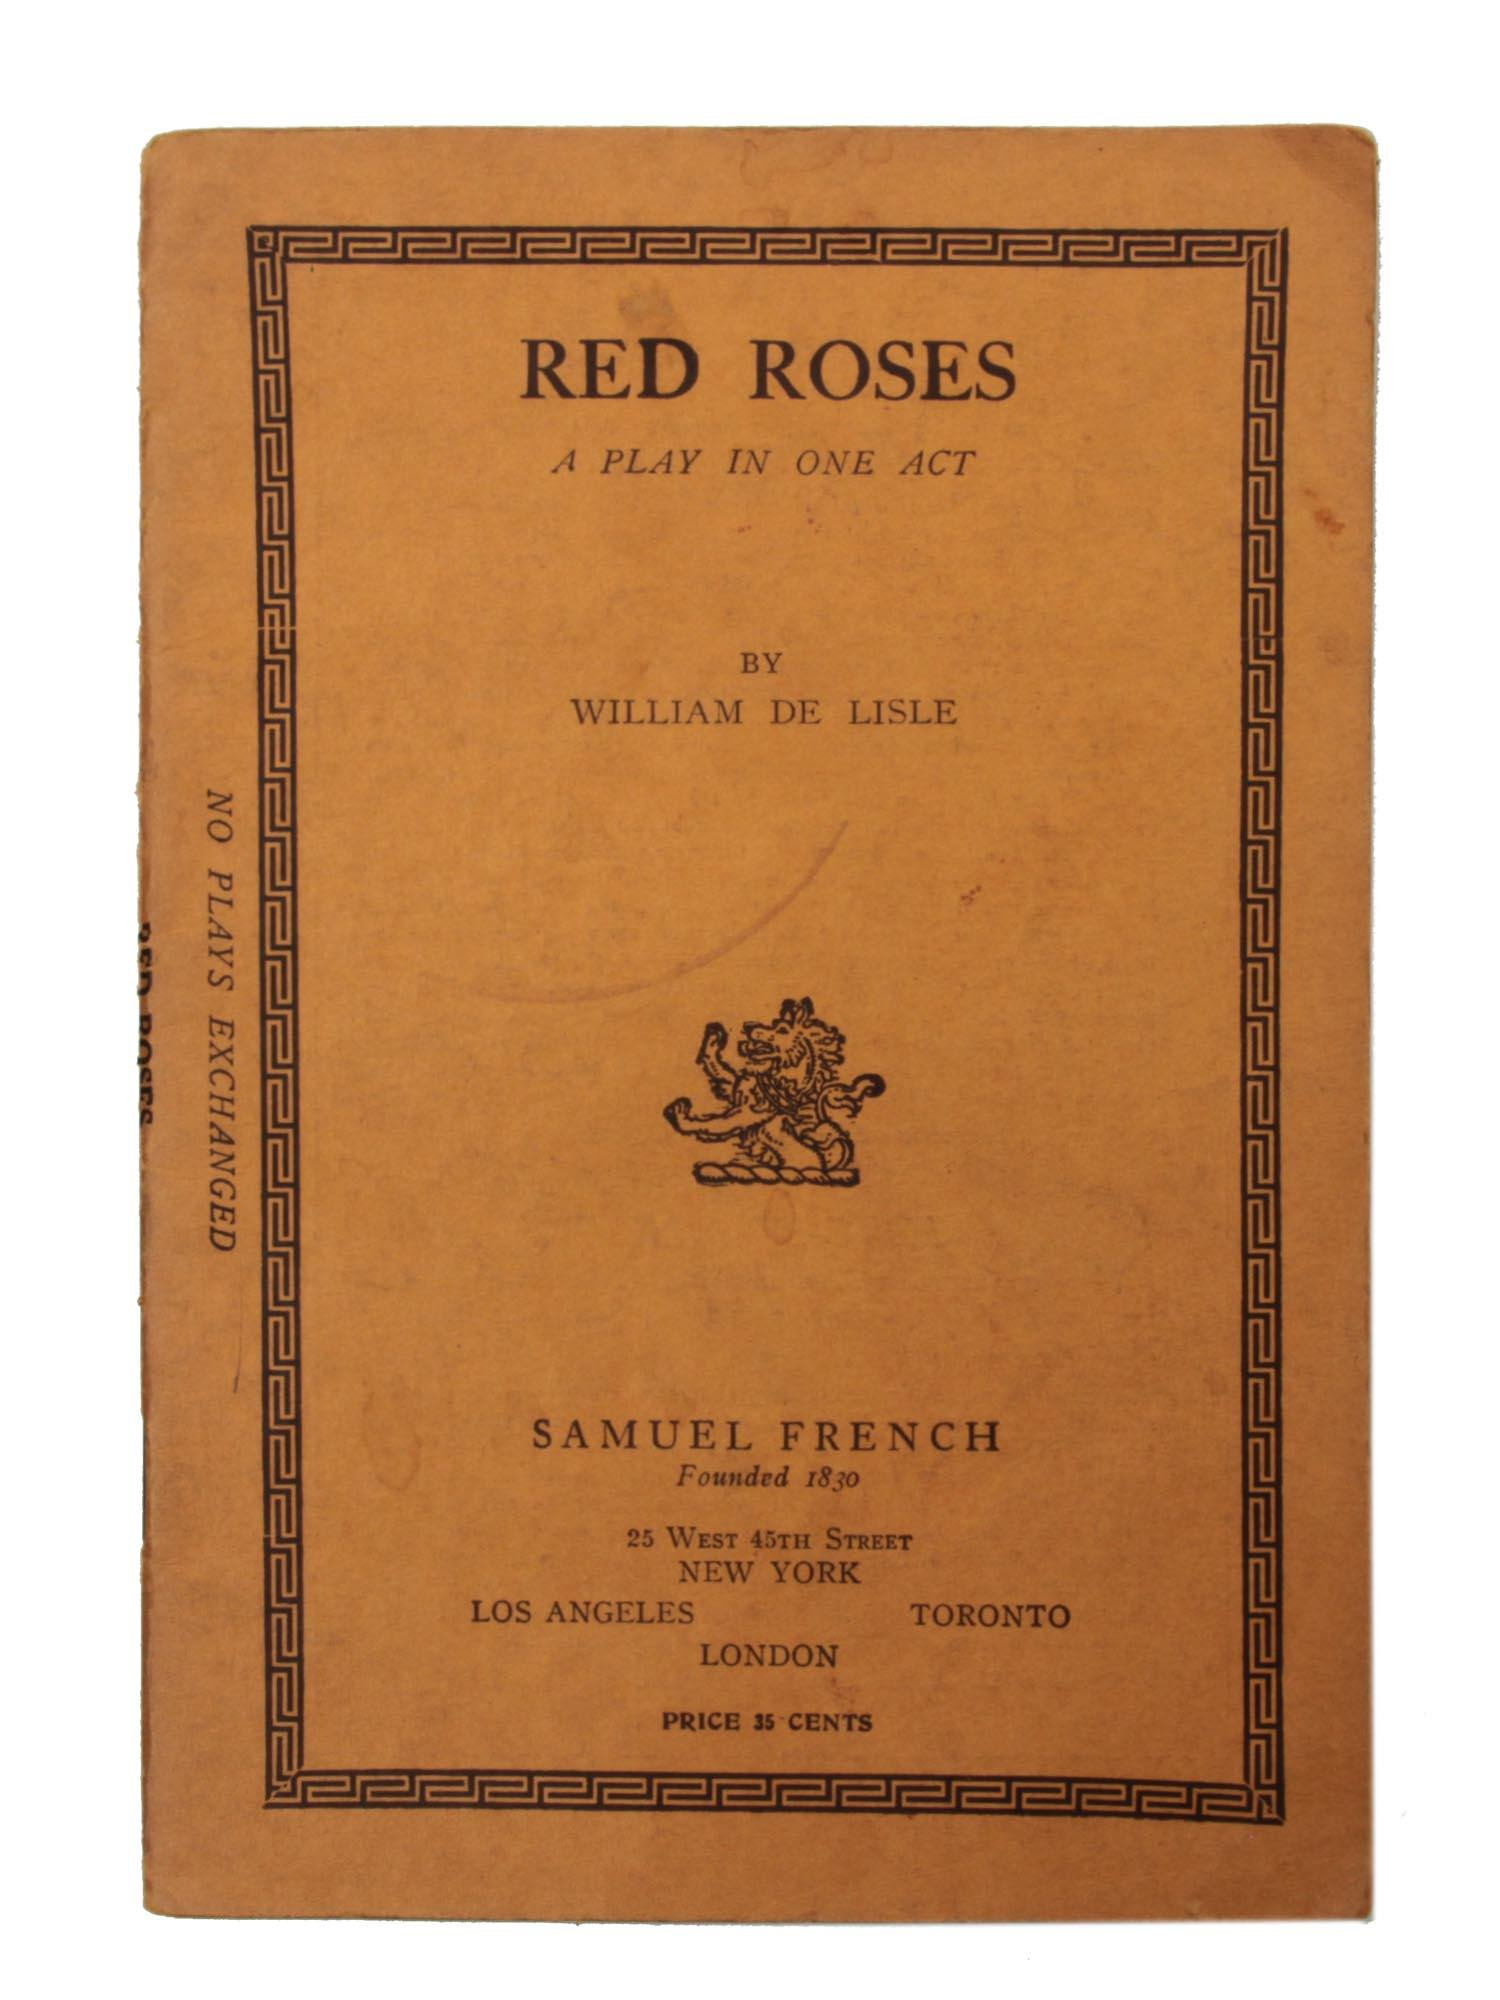 A BOOK RED ROSES A PLAY BY WILLIAM DE LISLE